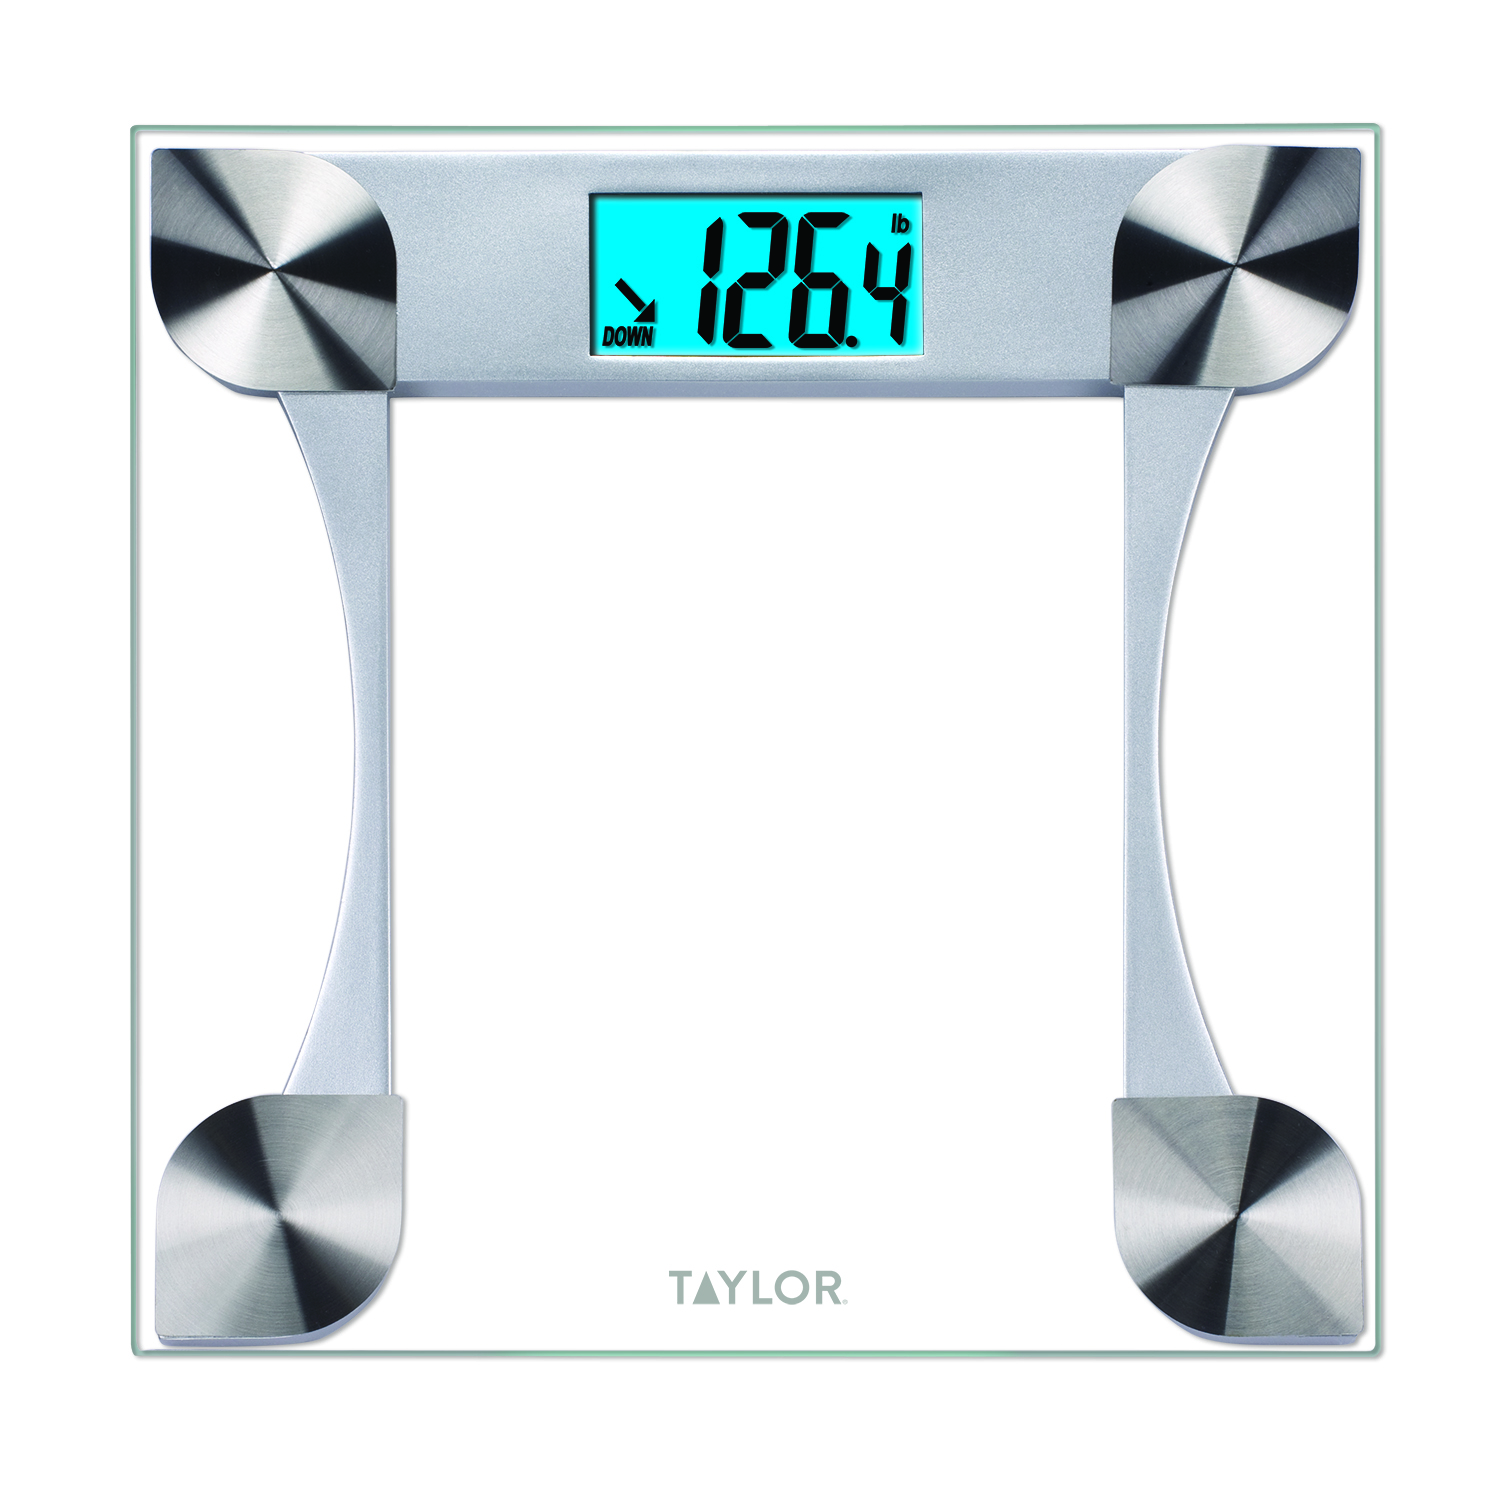 taylor 7595 digital glass bathroom scale with 2 user memory rh walmart com taylor bathroom scale instructions taylor bathroom scale battery size